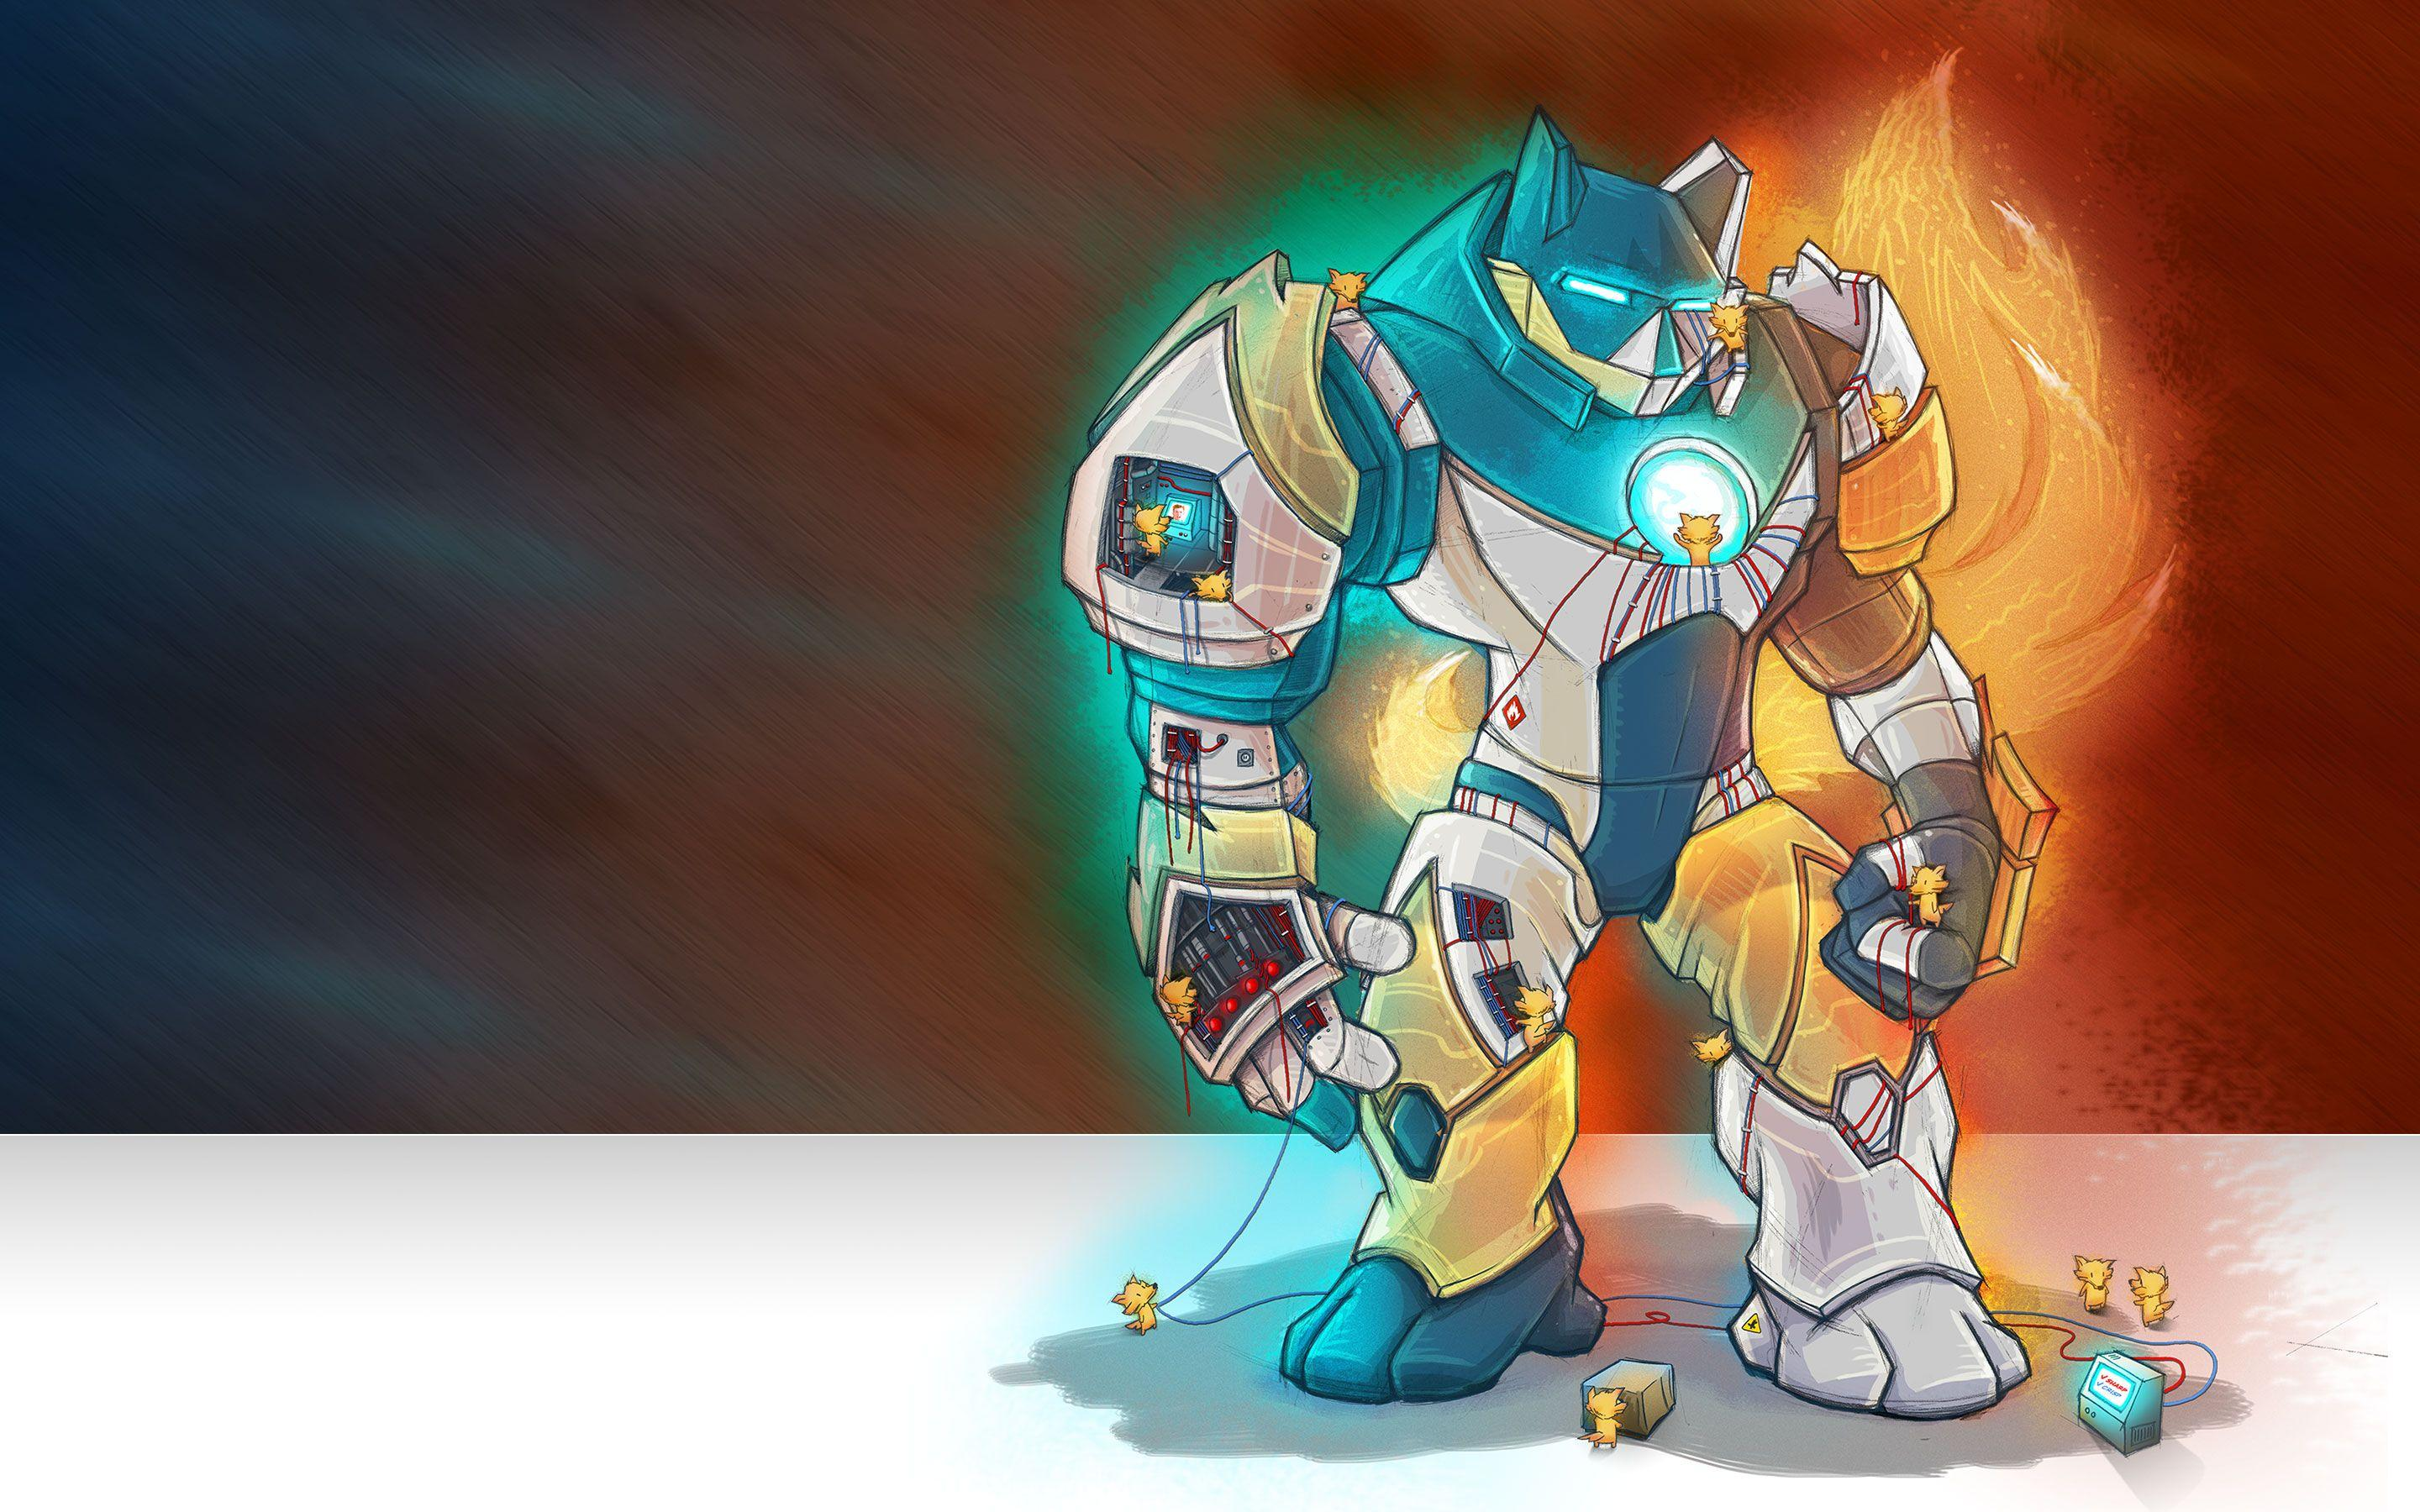 Mozilla created a hulking mecha suit named Mark 57 to rally its troops around the important Firefox 57 version due this November.